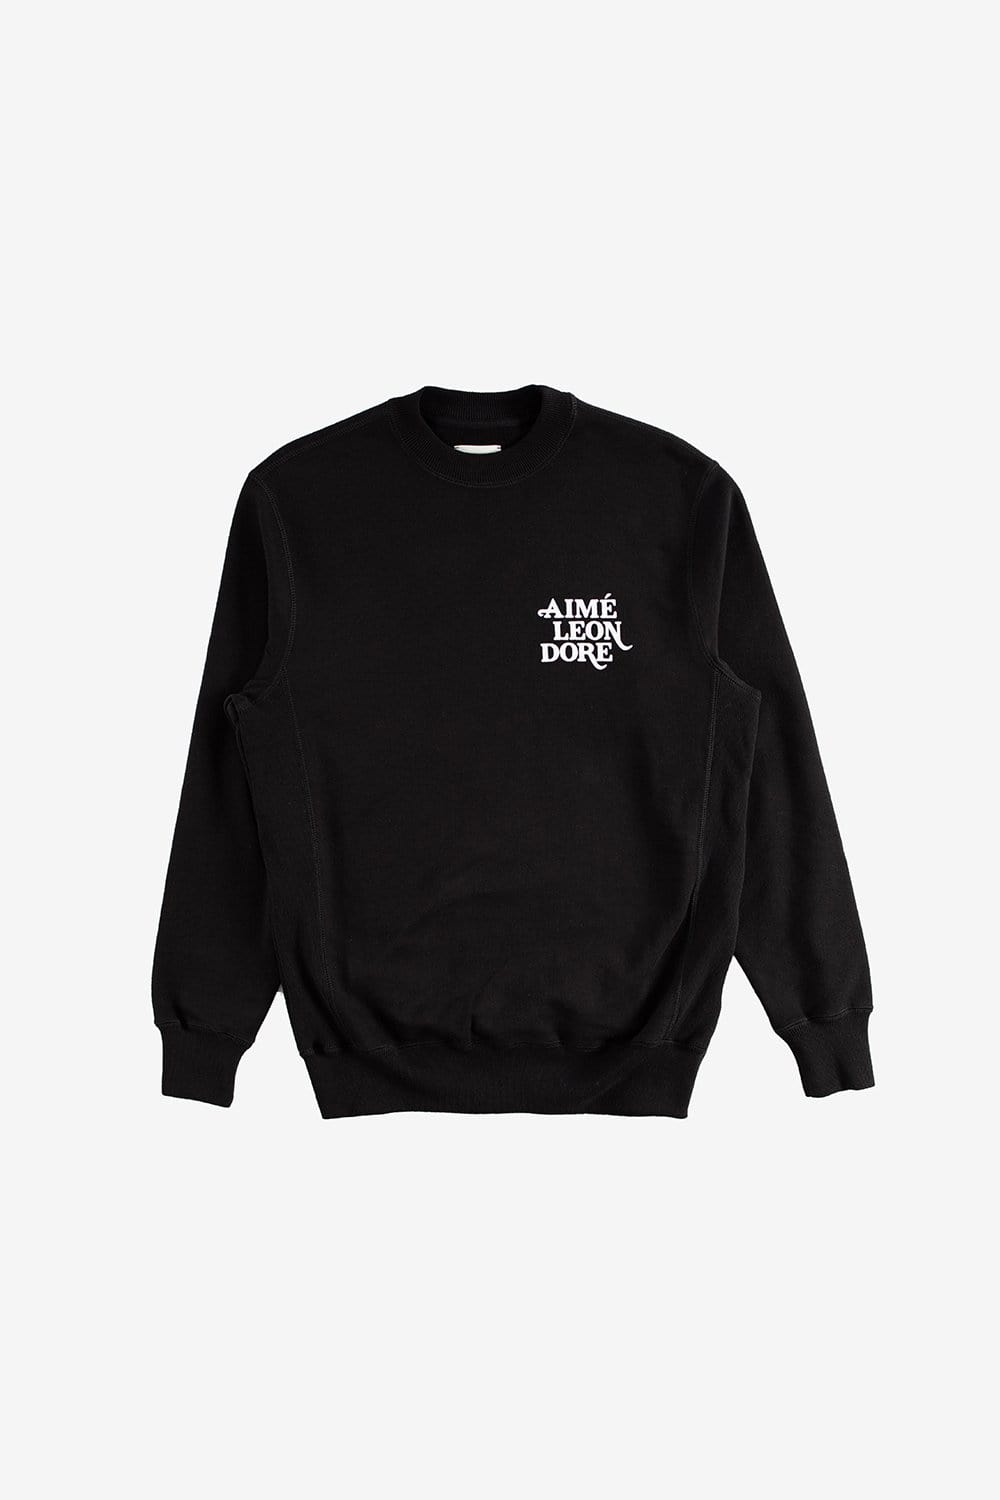 Aime Leon Dore Apparel 70s Graphic Crewneck Sweatshirt